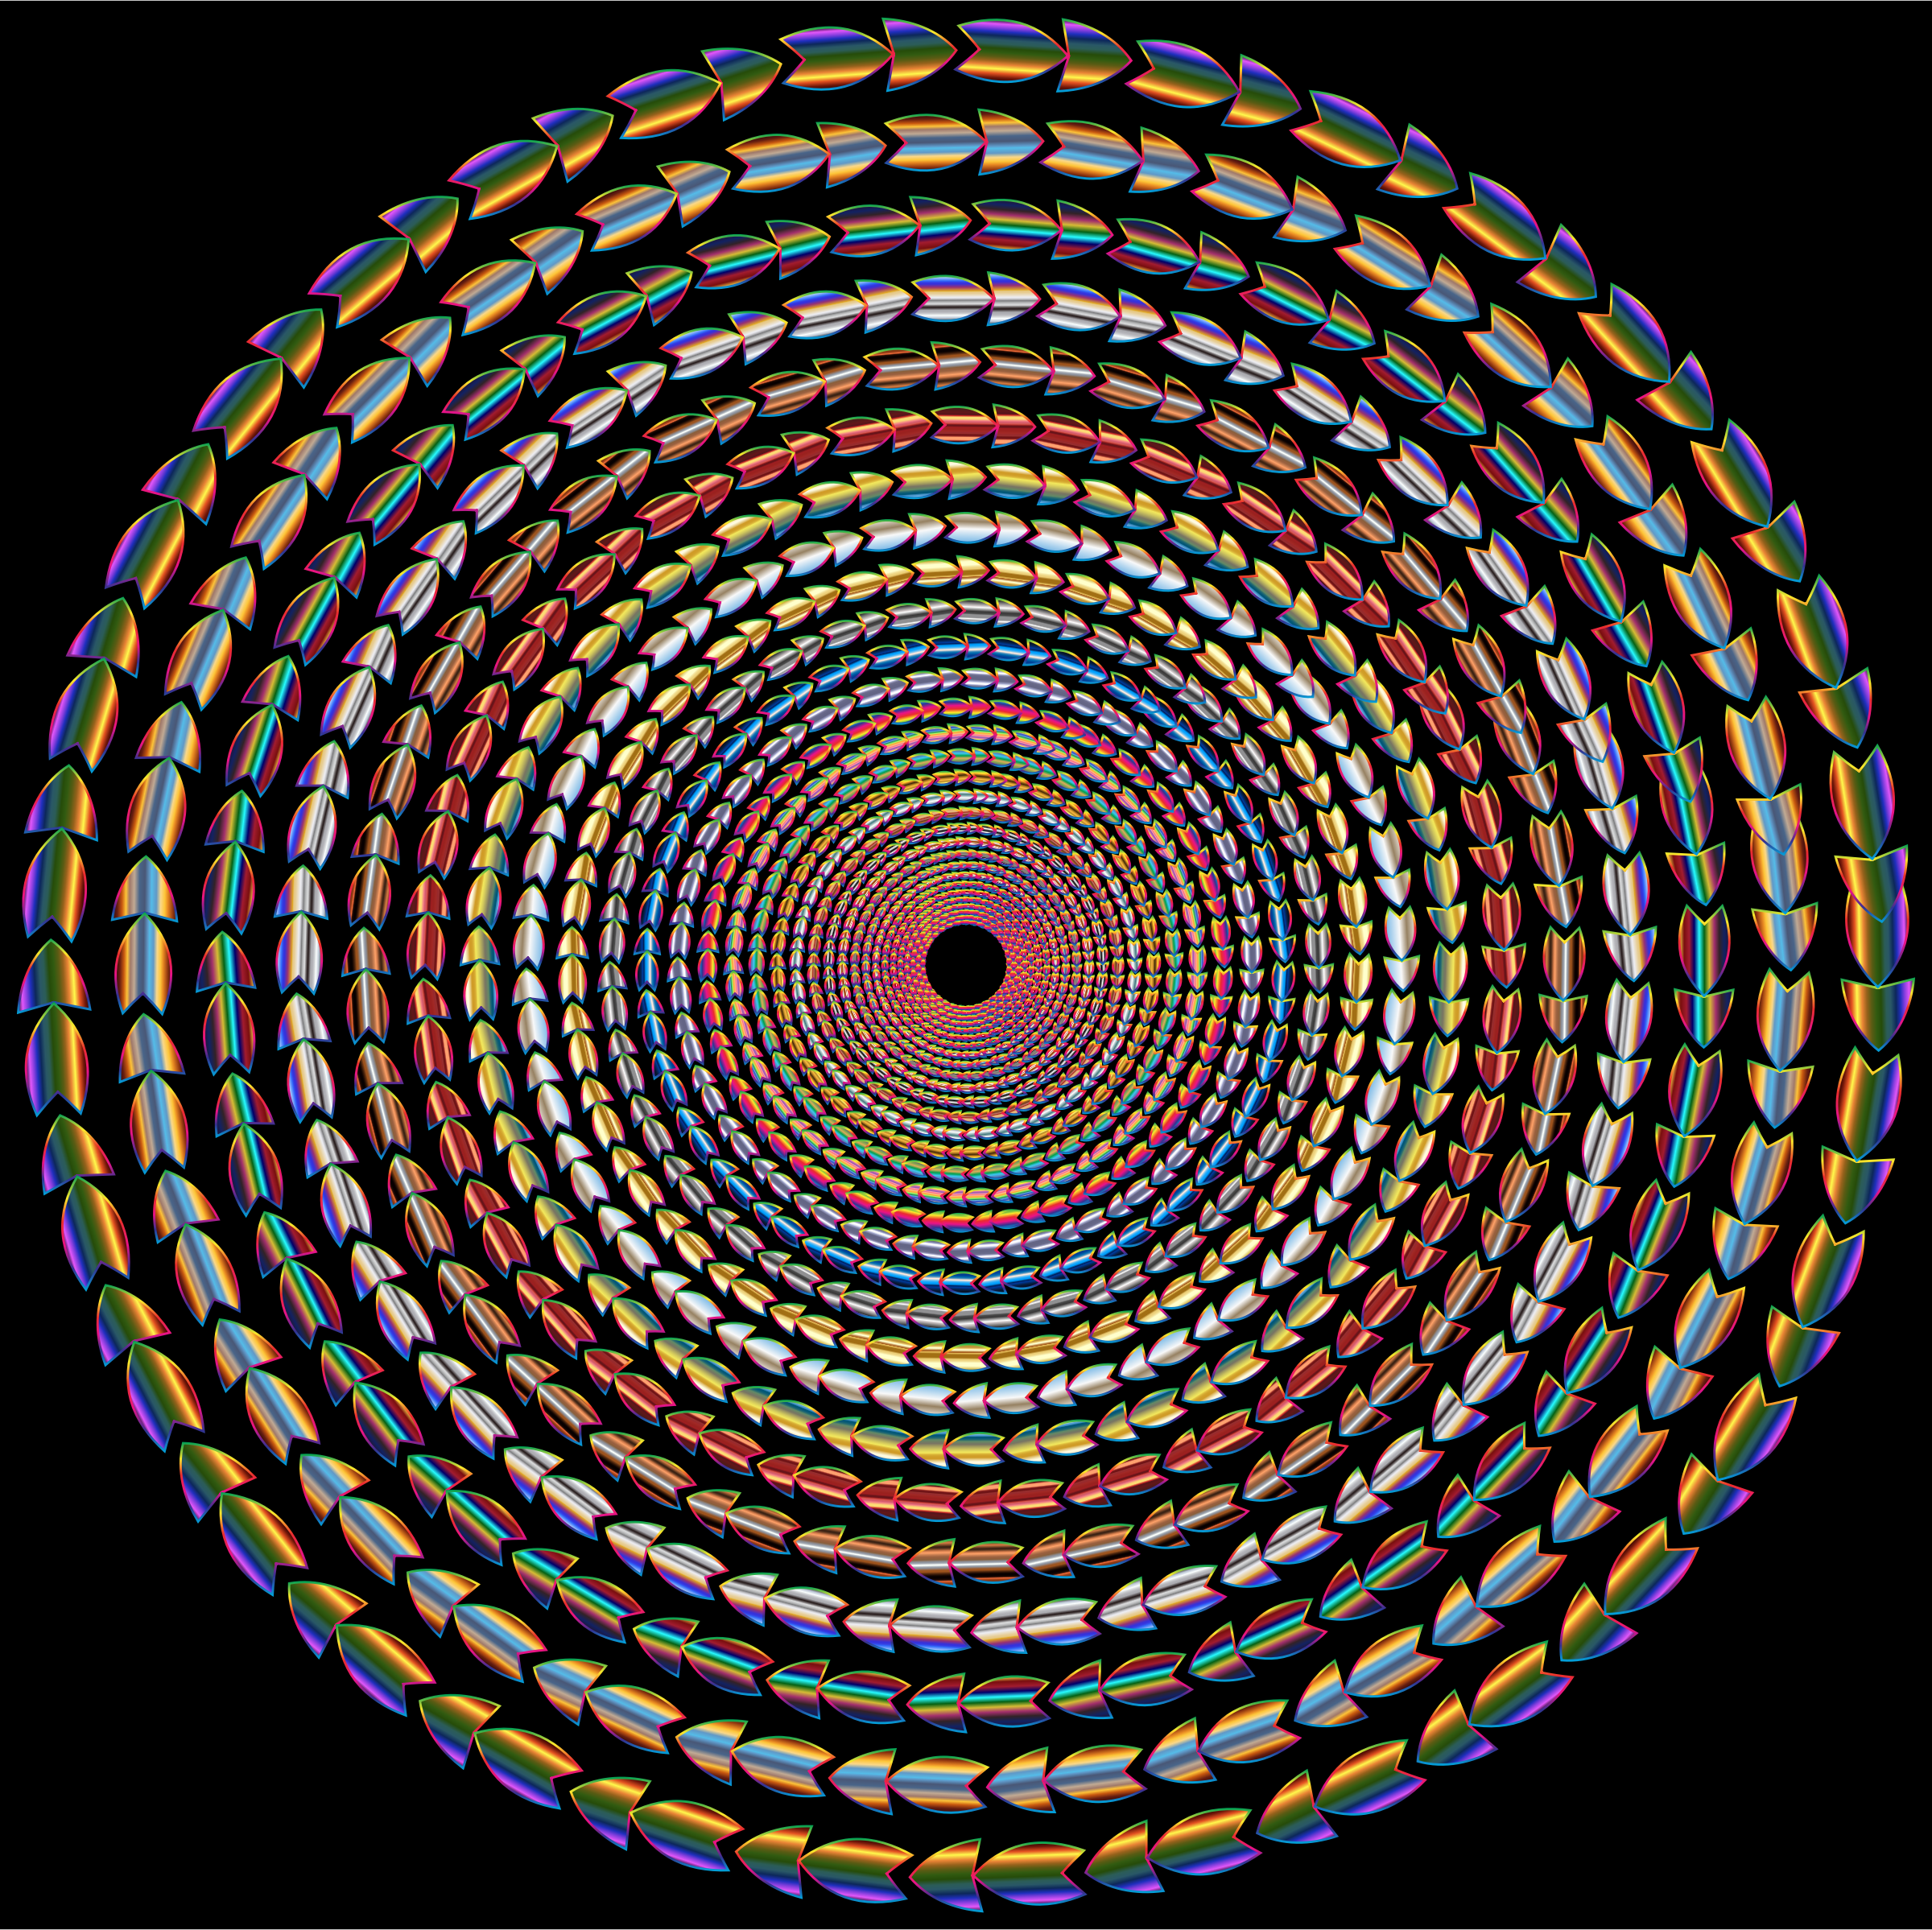 Polychromatic Colorful Direction Circle Vortex Variation 2 by GDJ